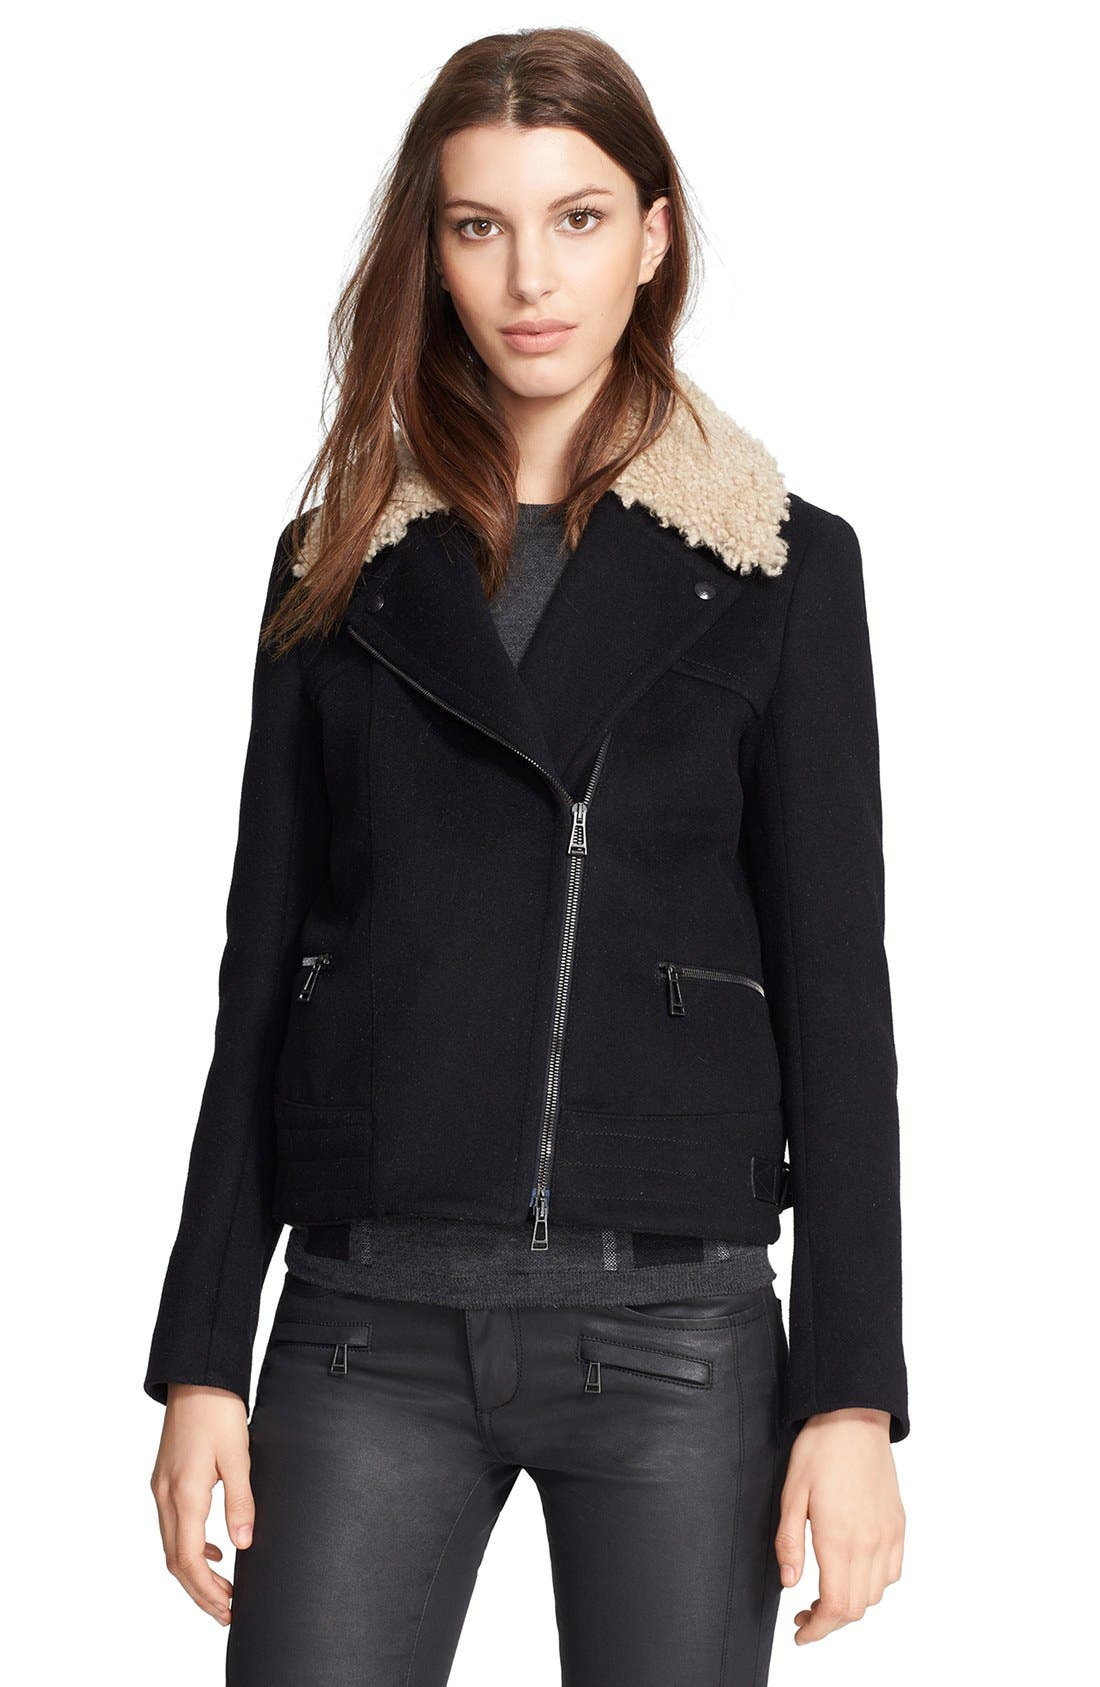 Alternate Image 1 Selected - Belstaff 'Kingsley' Lightweight Tweed Moto Jacket with Genuine Shearling Collar